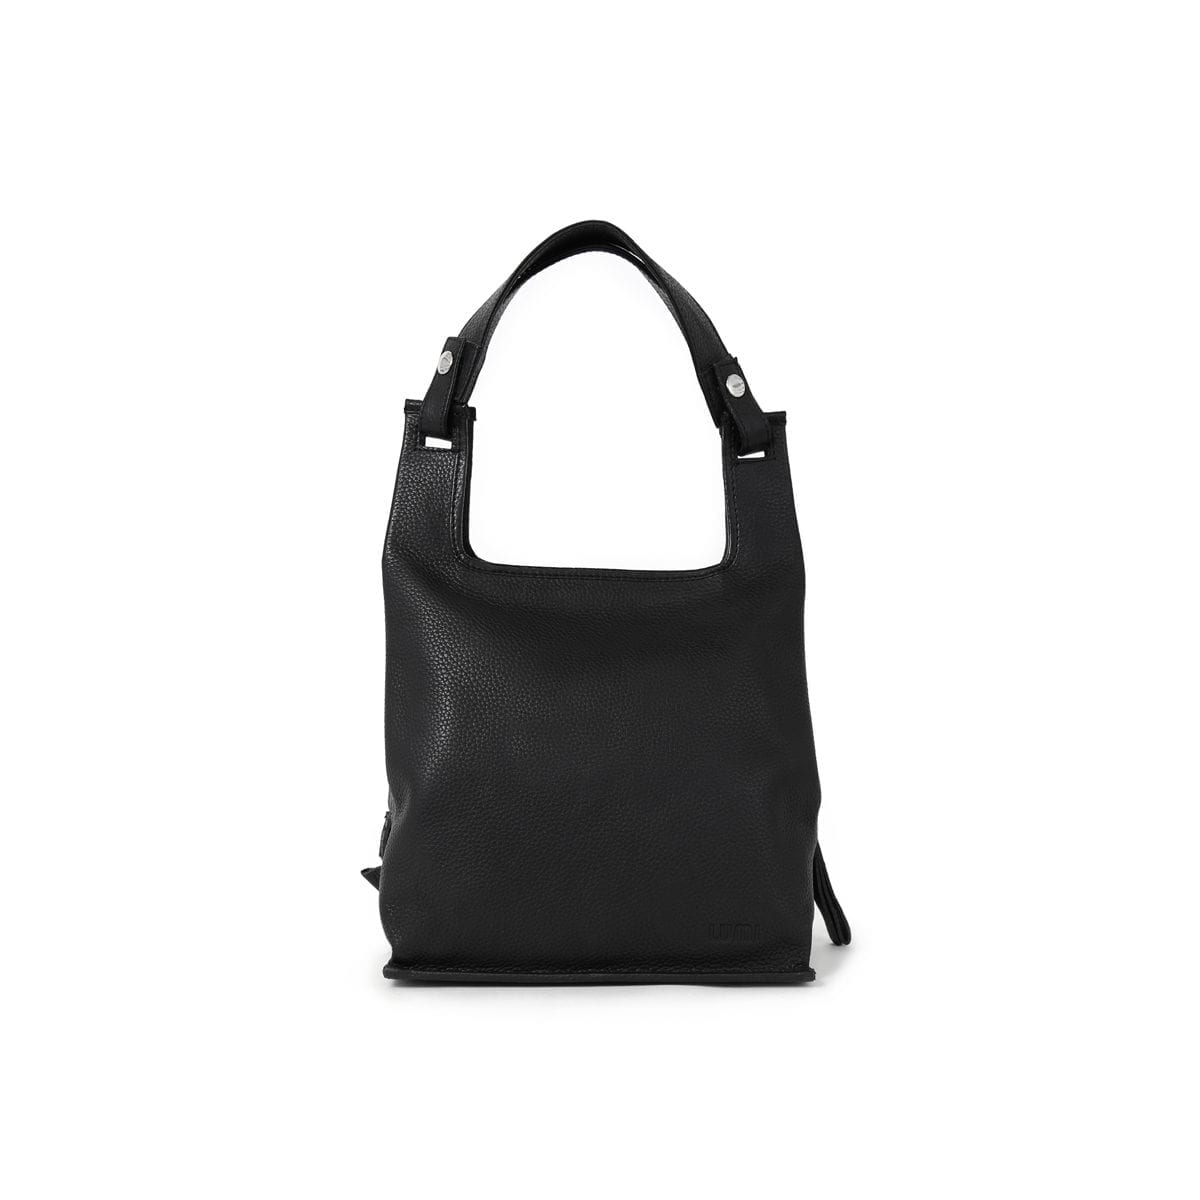 Small Supermarket bag in black